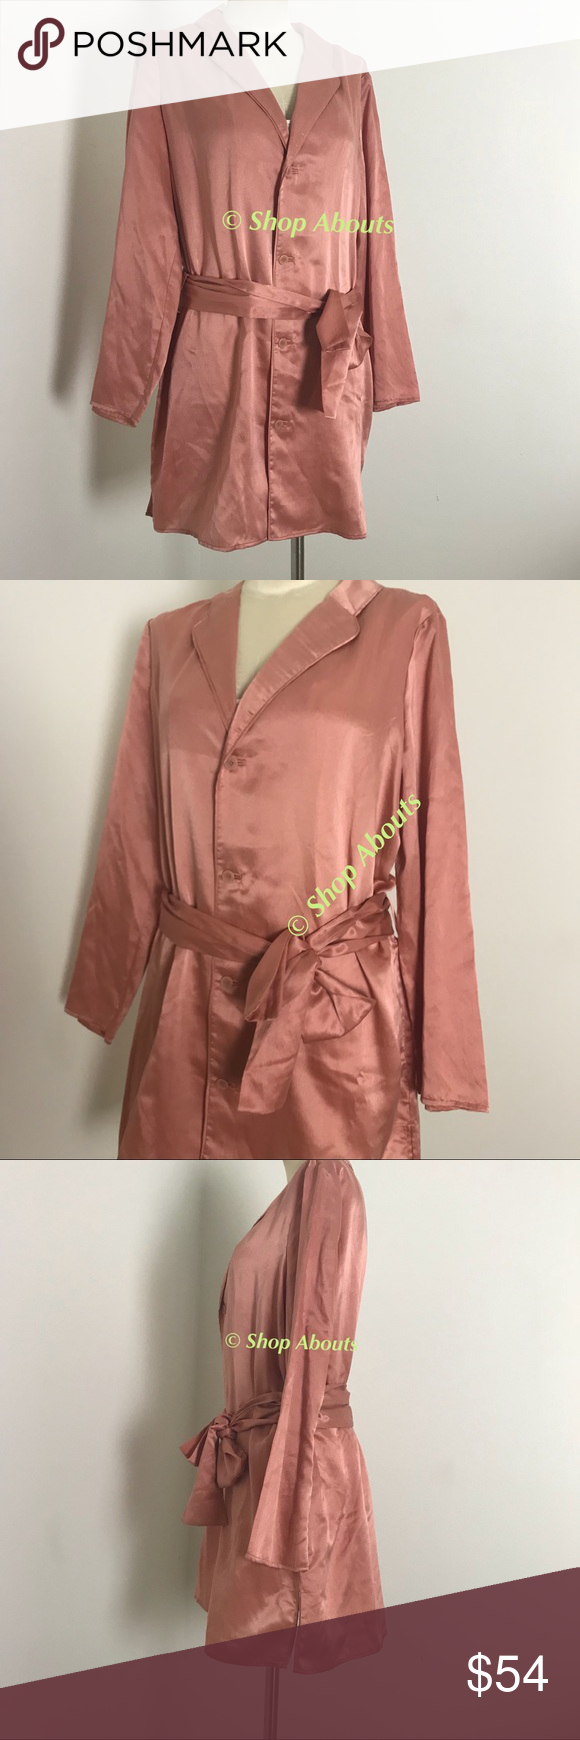 Kate Spade Lux Silk Cotton Short Robe New with Tags 50% Silk 50% Cotton 8165242ee